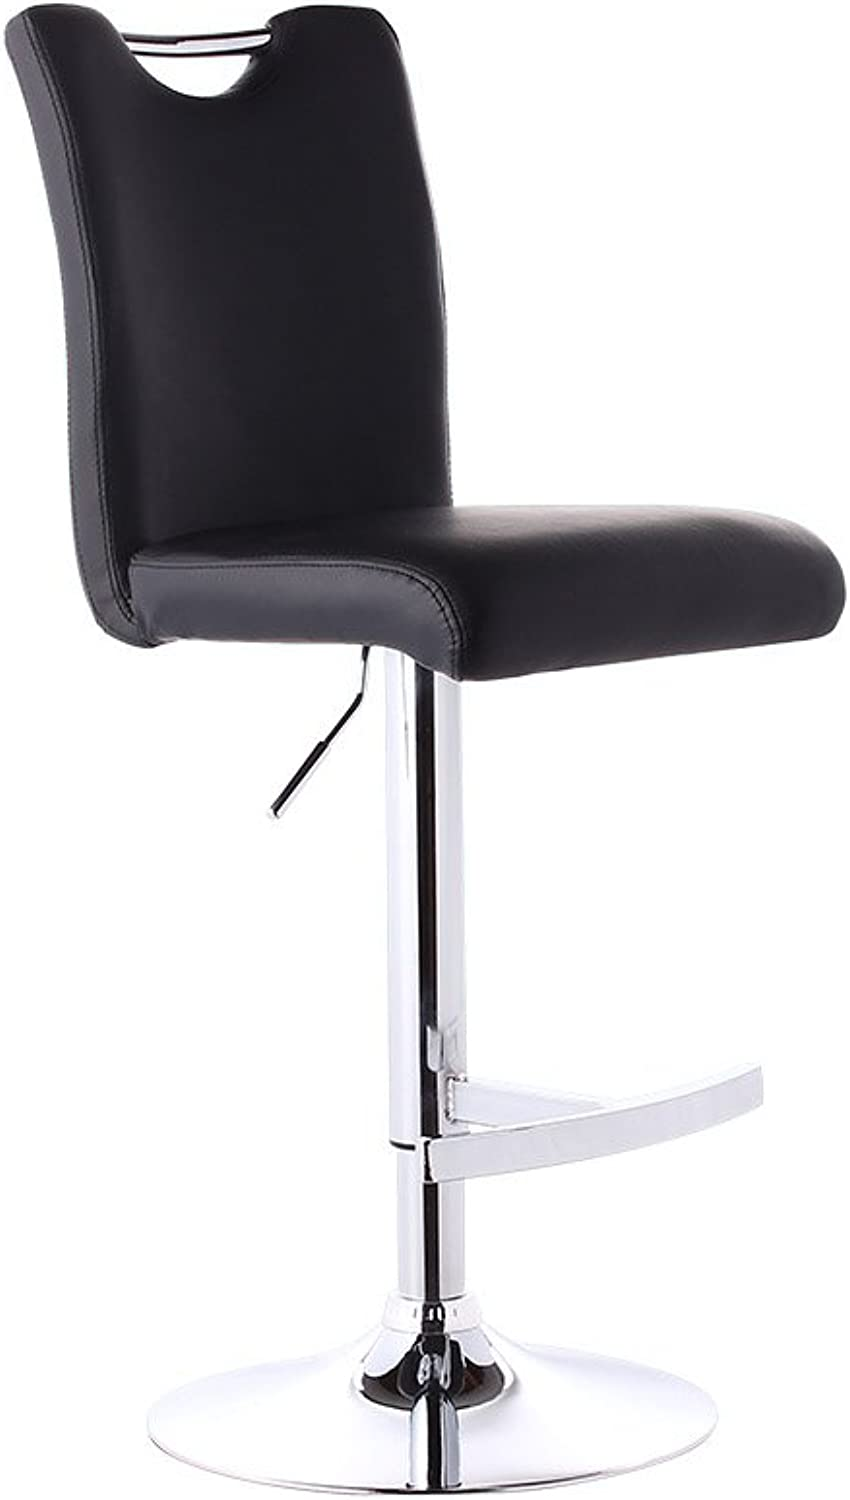 Mesurn Leisure Bar Chairs, High Stools, Can Be Raised and Lowered redation Continental Coffee Shop Bar Front Desk Chair PU Material, Seat Height 60-80cm (color   Black)